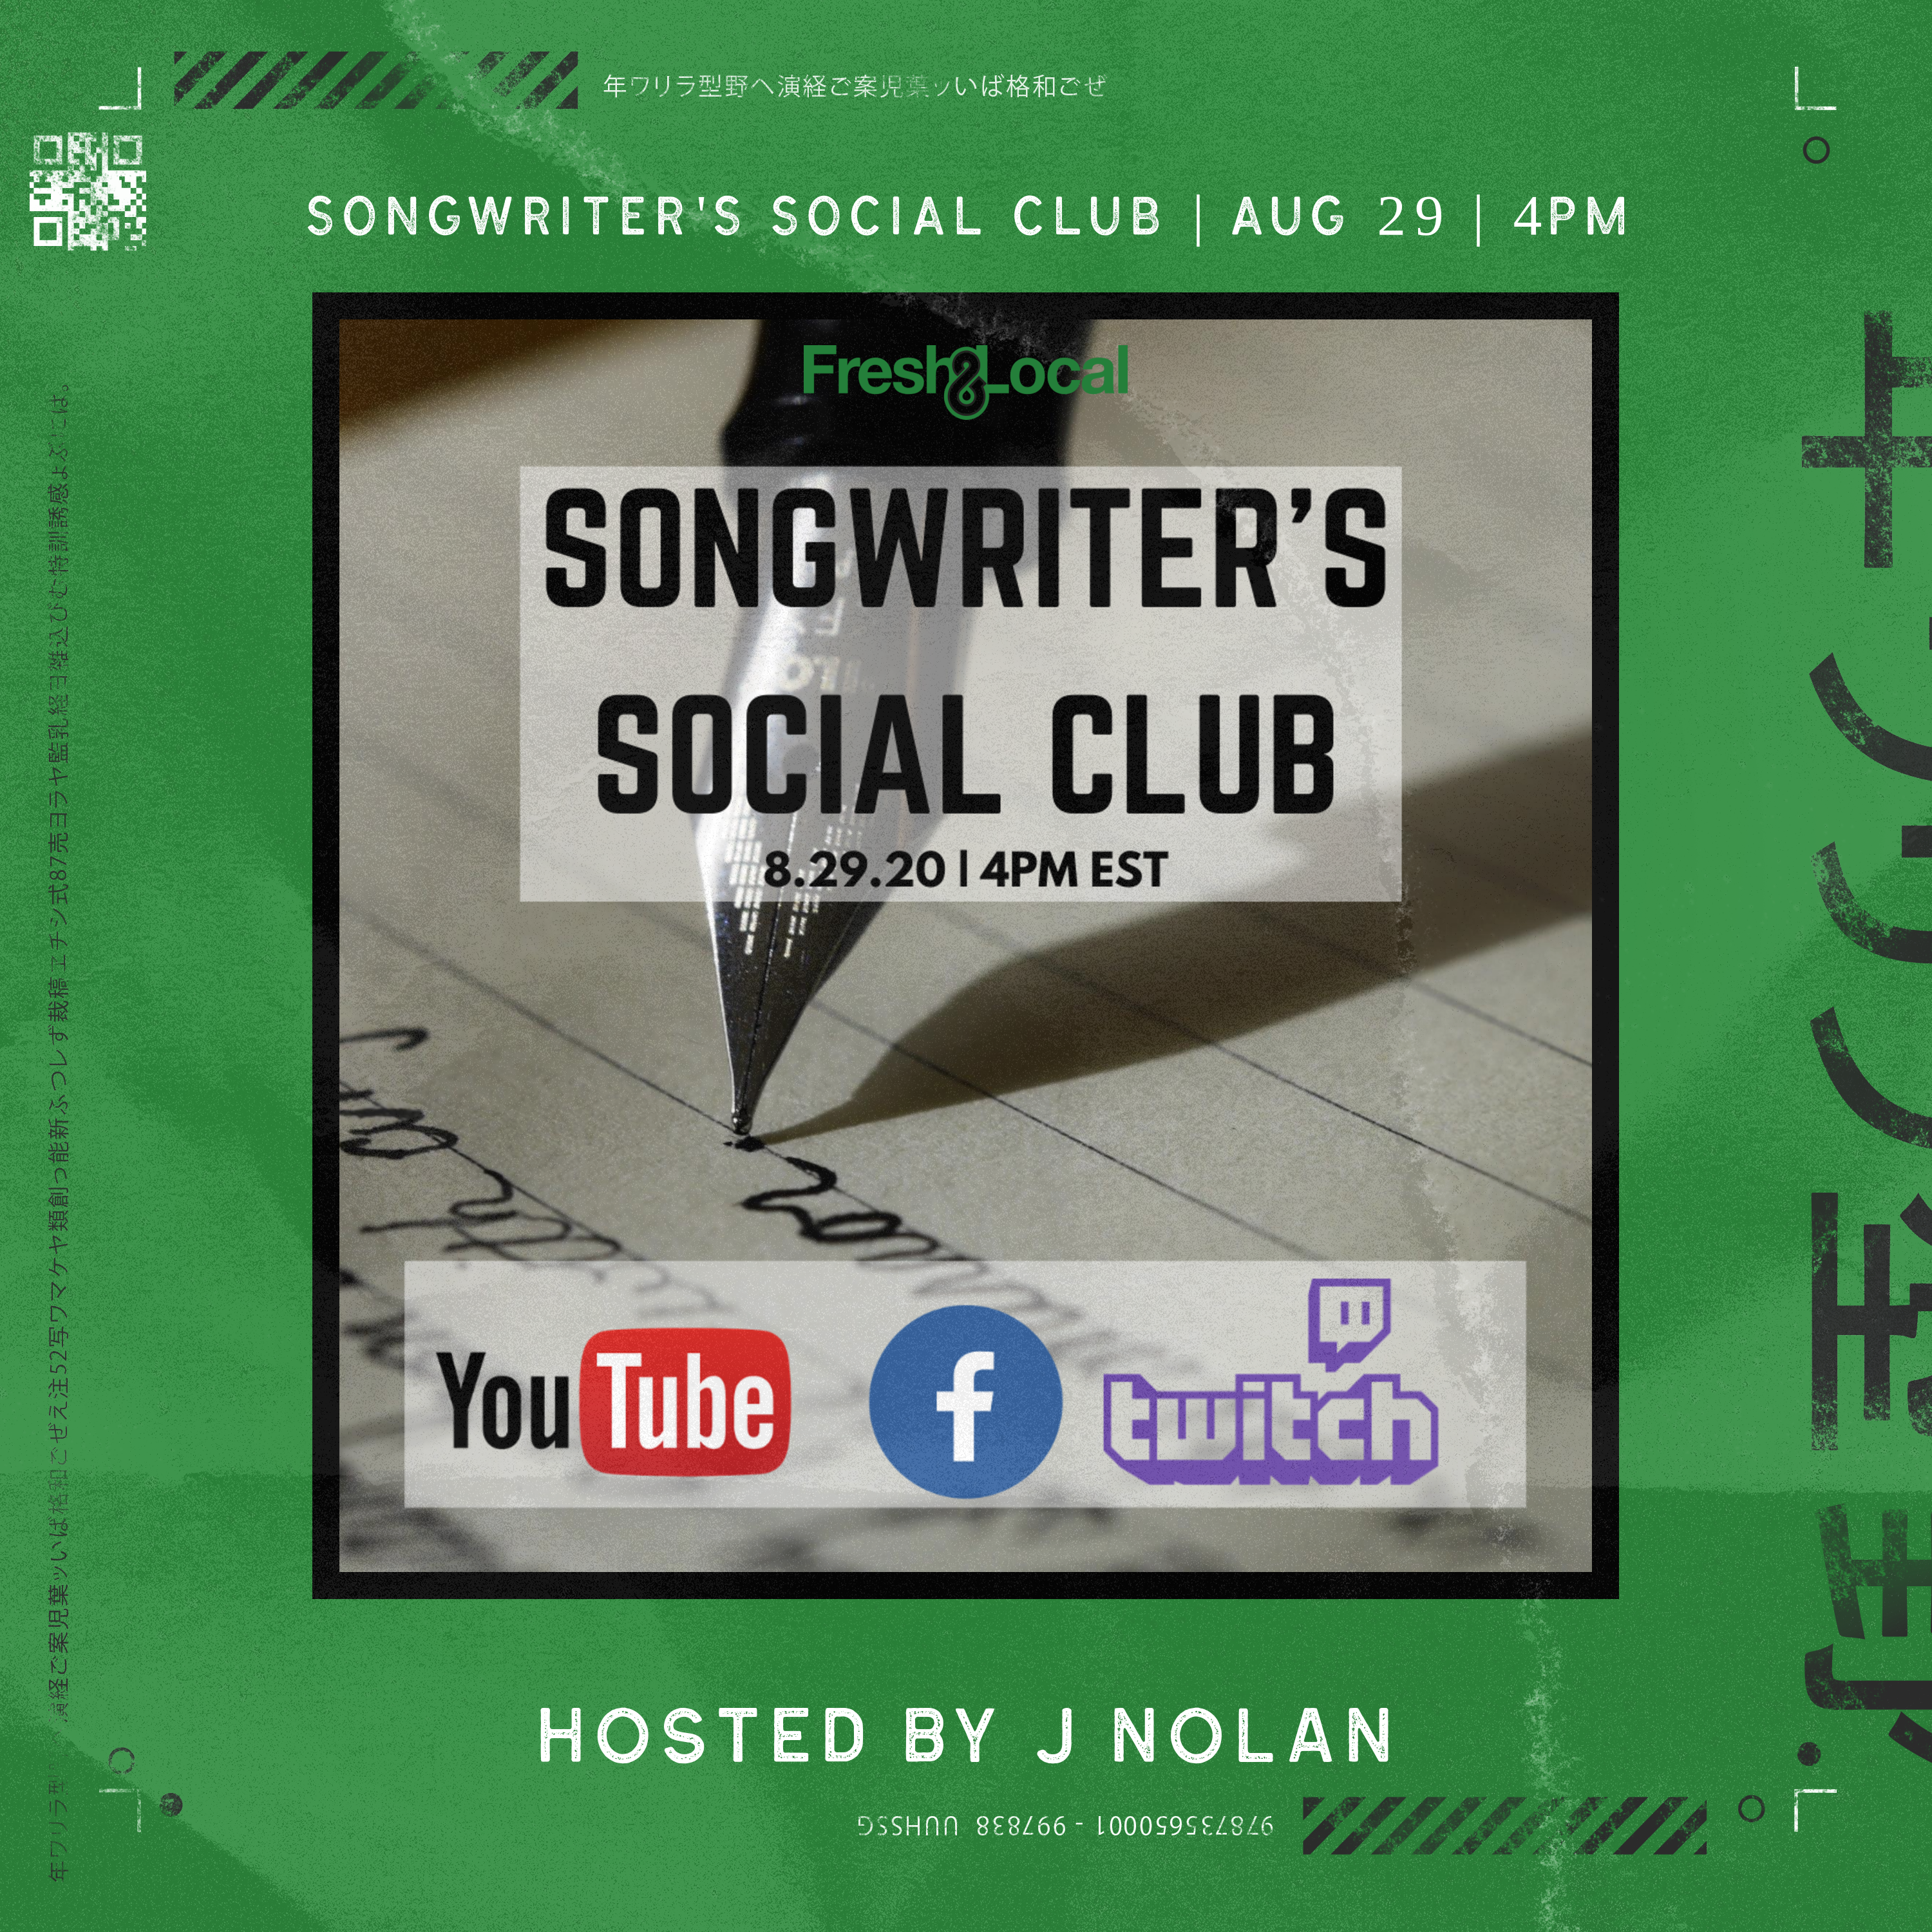 The Songwriter's Social Club is Coming Back on Aug. 29th!